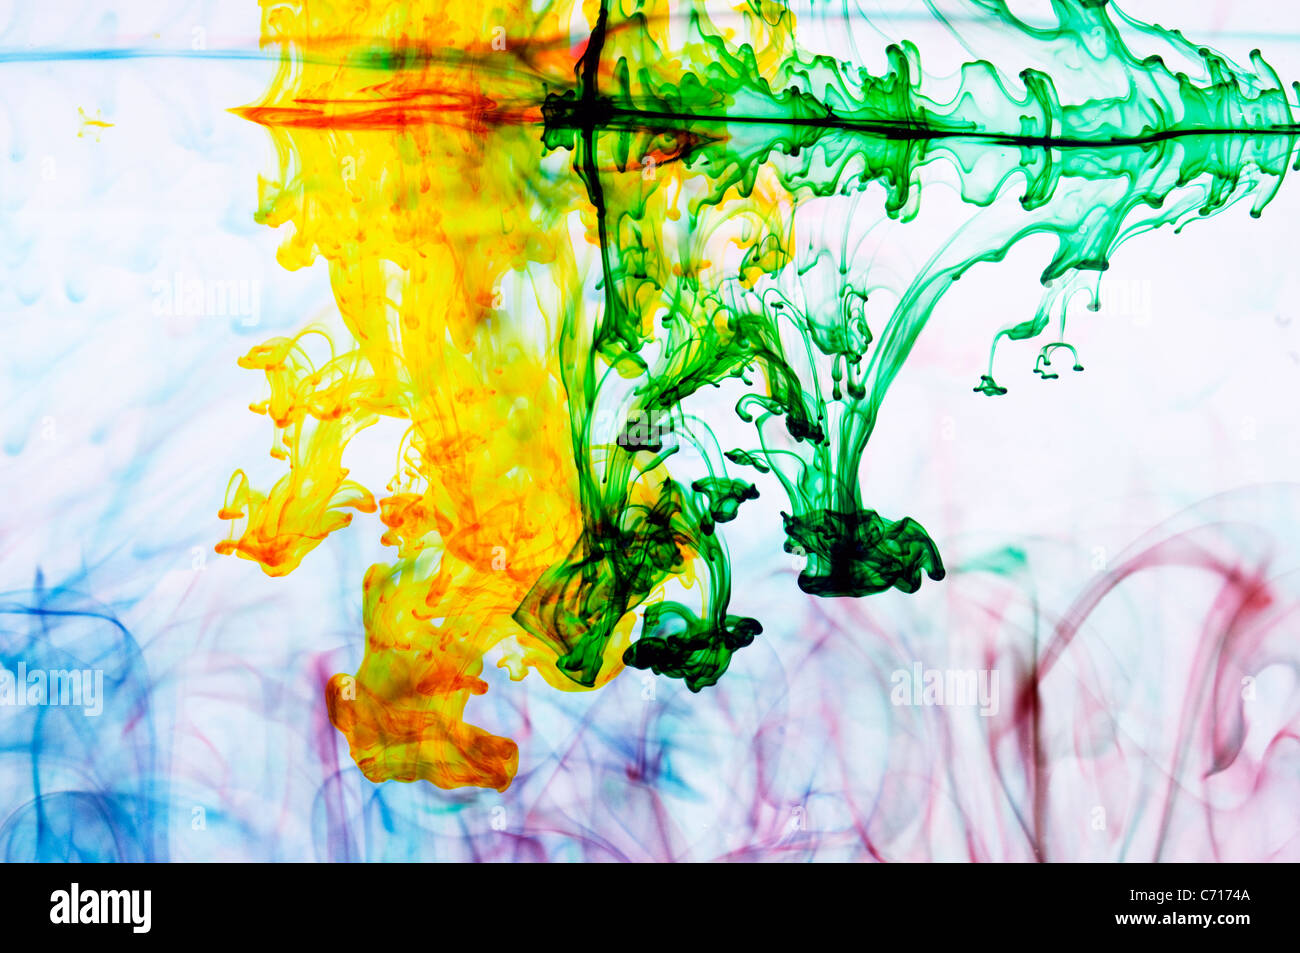 Food coloring makes abstract patterns in water, Lake Tahoe, California. - Stock Image